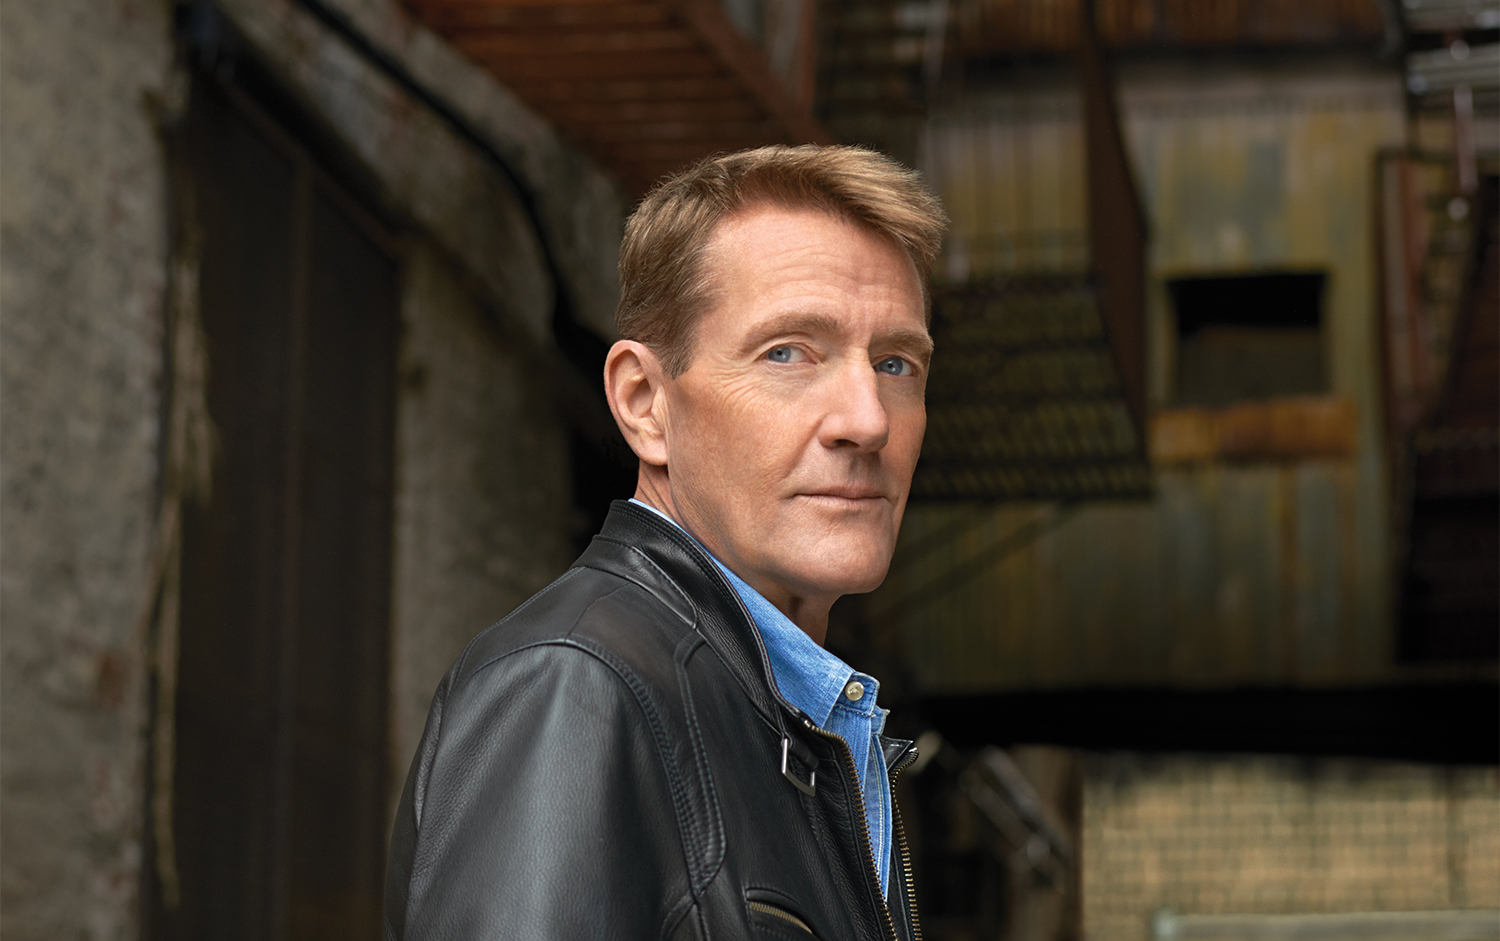 LEE CHILD TO RECEIVE INTERNATIONAL RECOGNITION AWARD DURING THE 'AN POST IRISH BOOK OF THE YEAR' TV SHOW ON RTÉ ONE